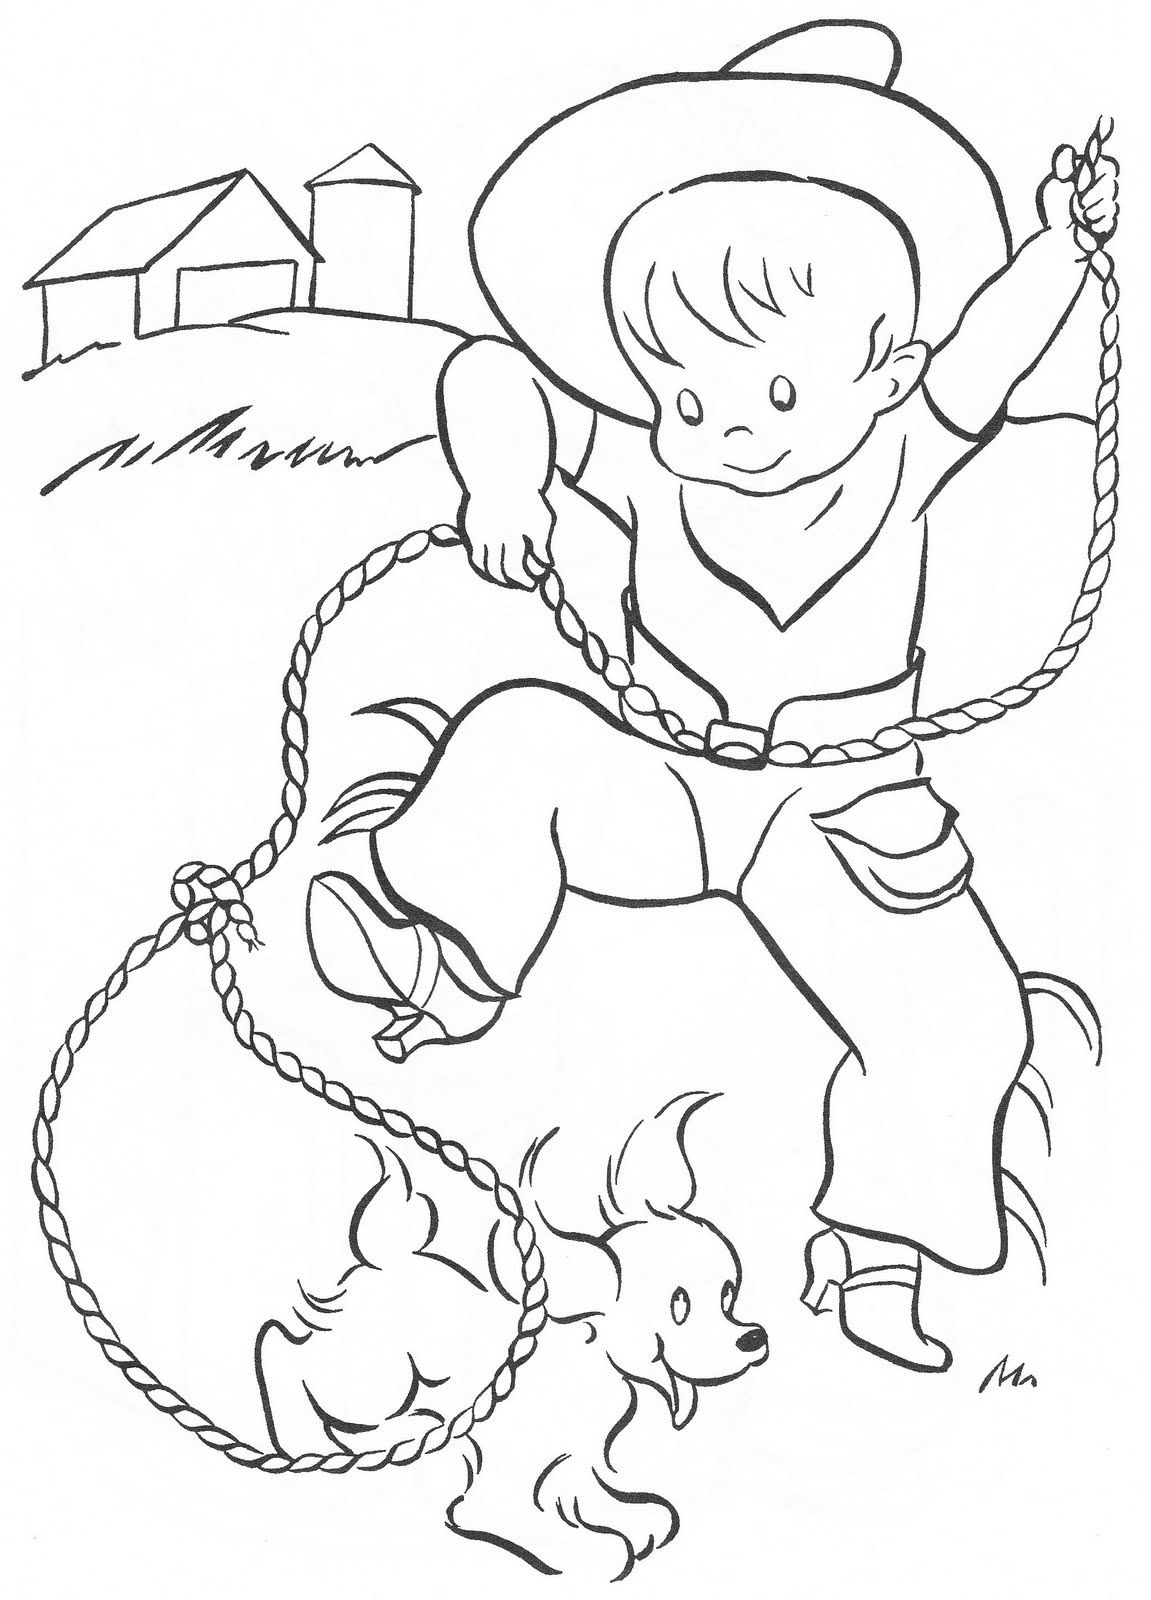 44++ Poppy and sam coloring pages free download